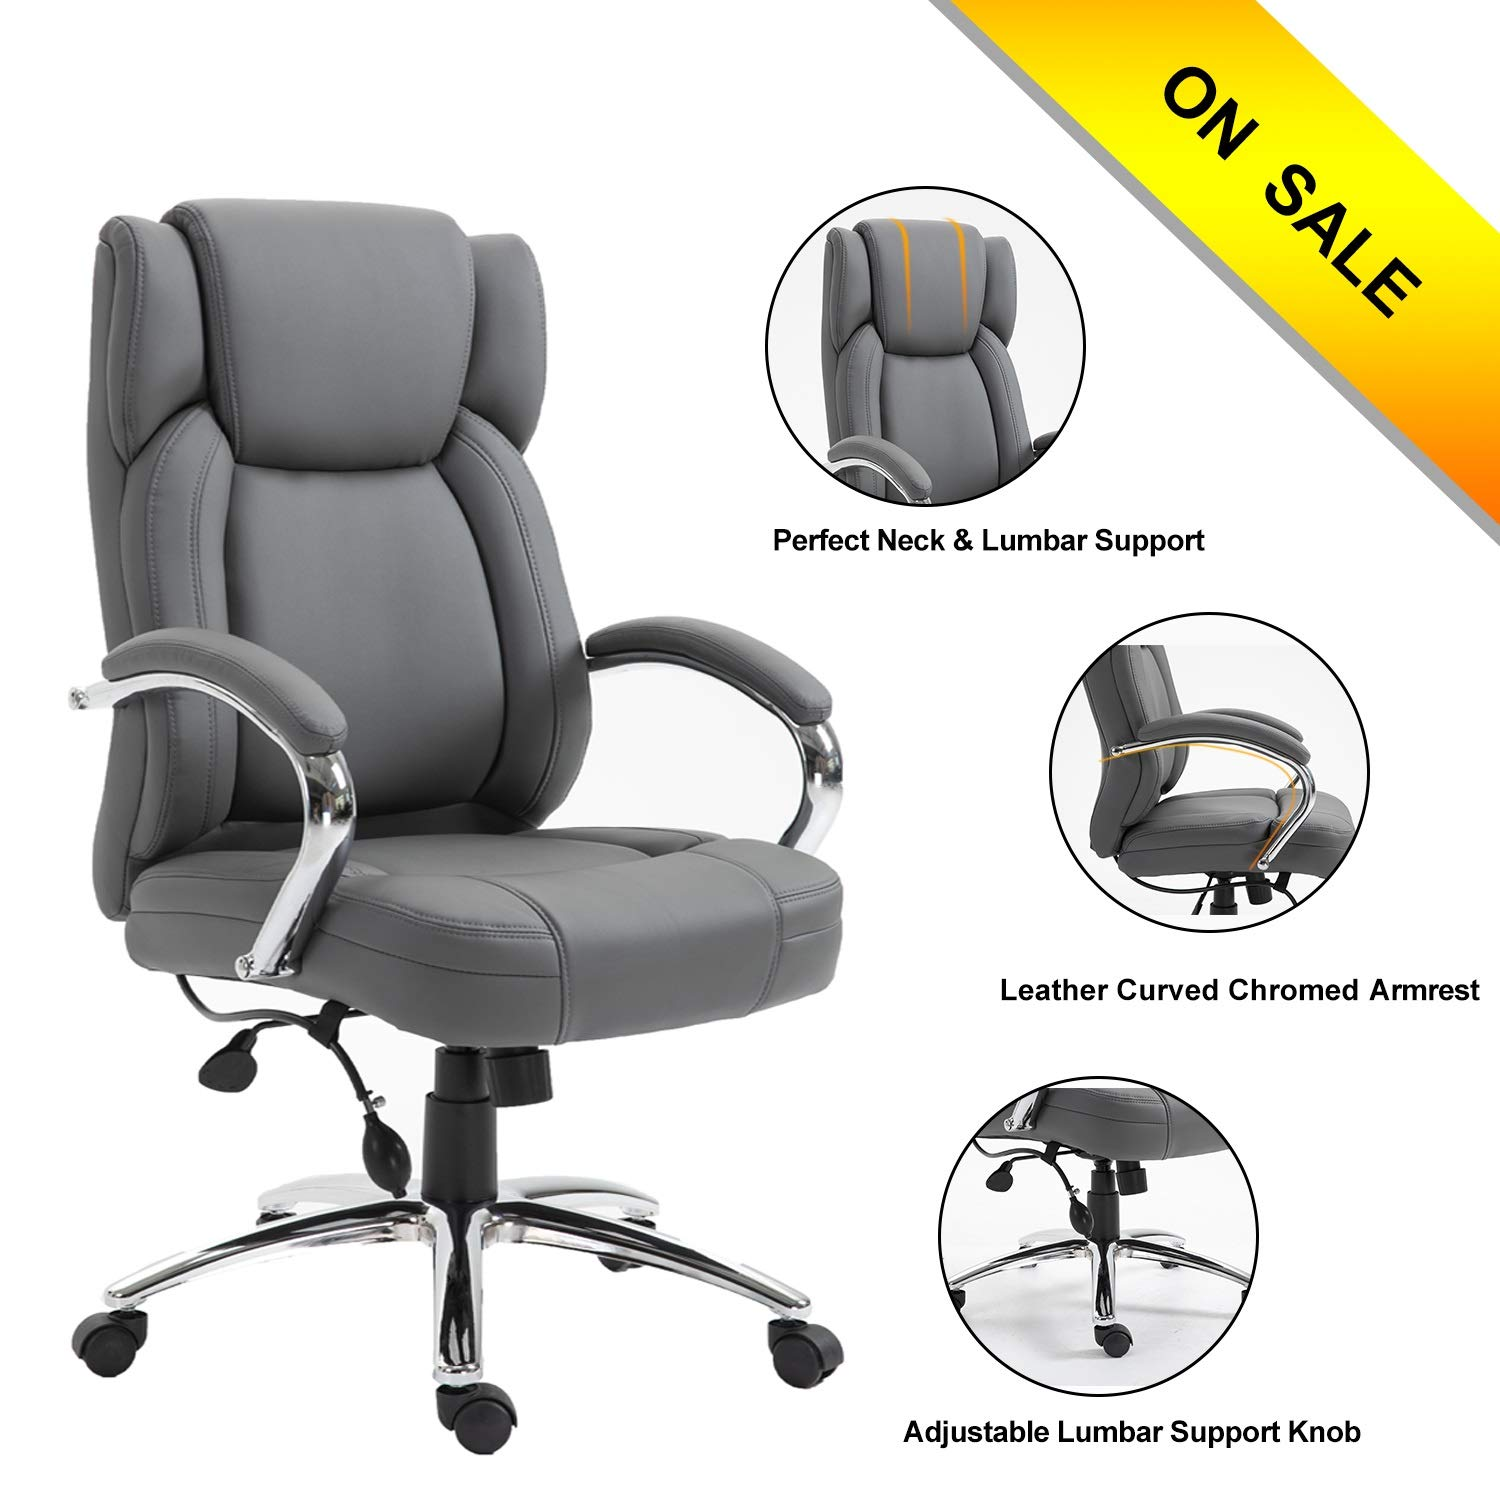 High Back Pu Leather Executive Office Chair- Ergonomic Office Chairs Adjustable Tilt Angle and Chromed Arms with Lumbar Support, Executive Office Chairs for Man and Women PEXECL001 Gray